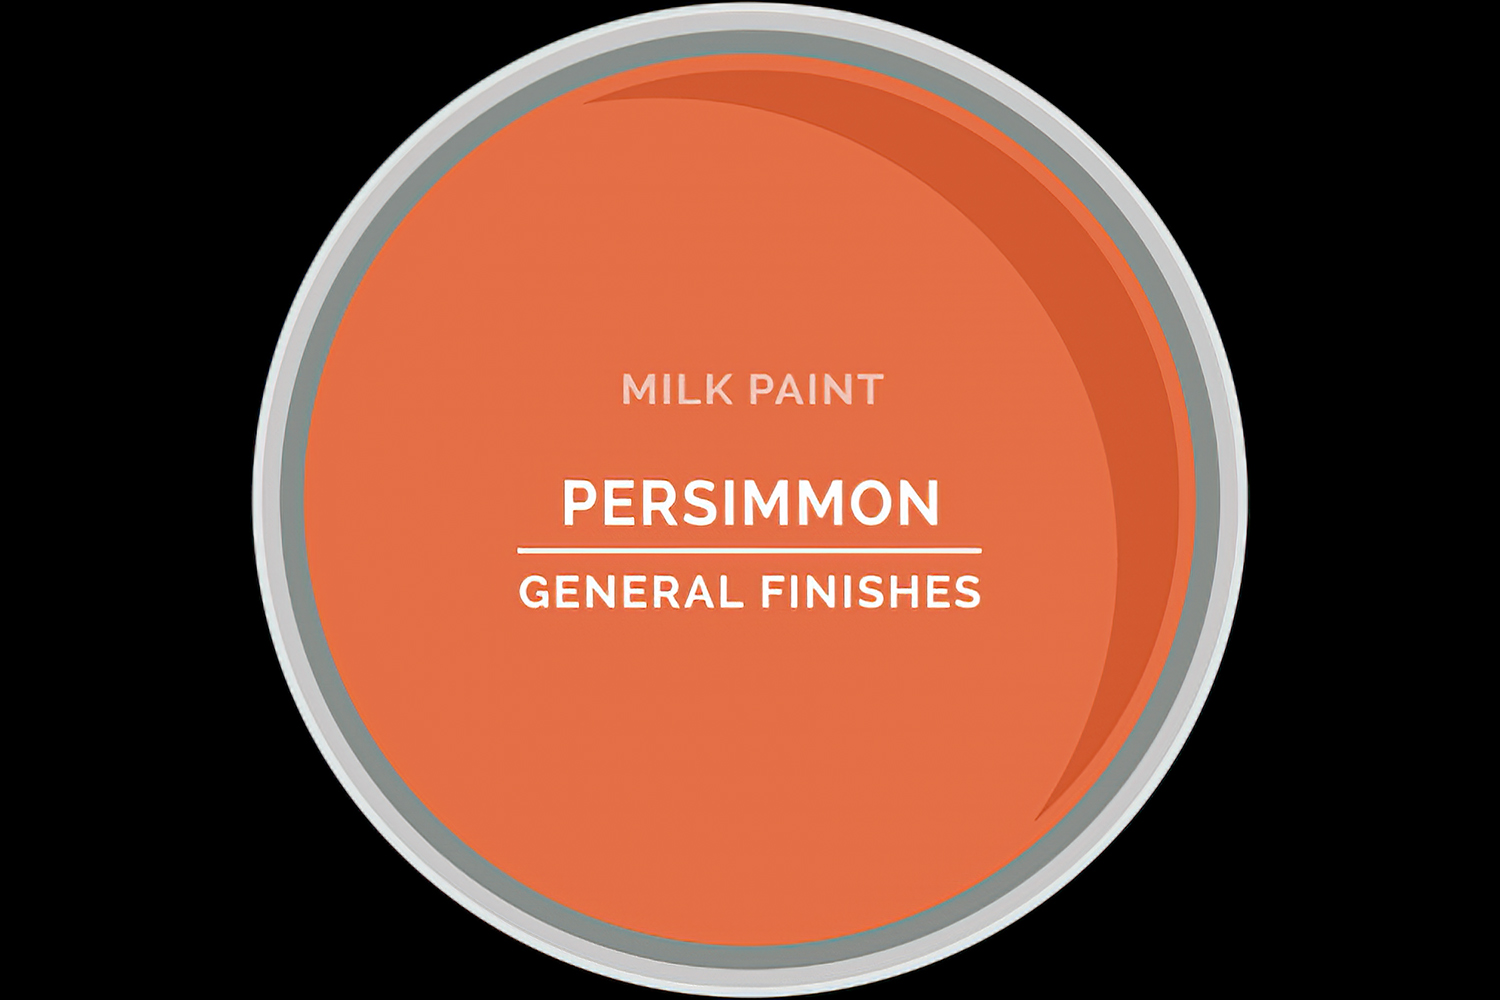 Color Chip Milk Paint PERSIMMON General Finishes Copy